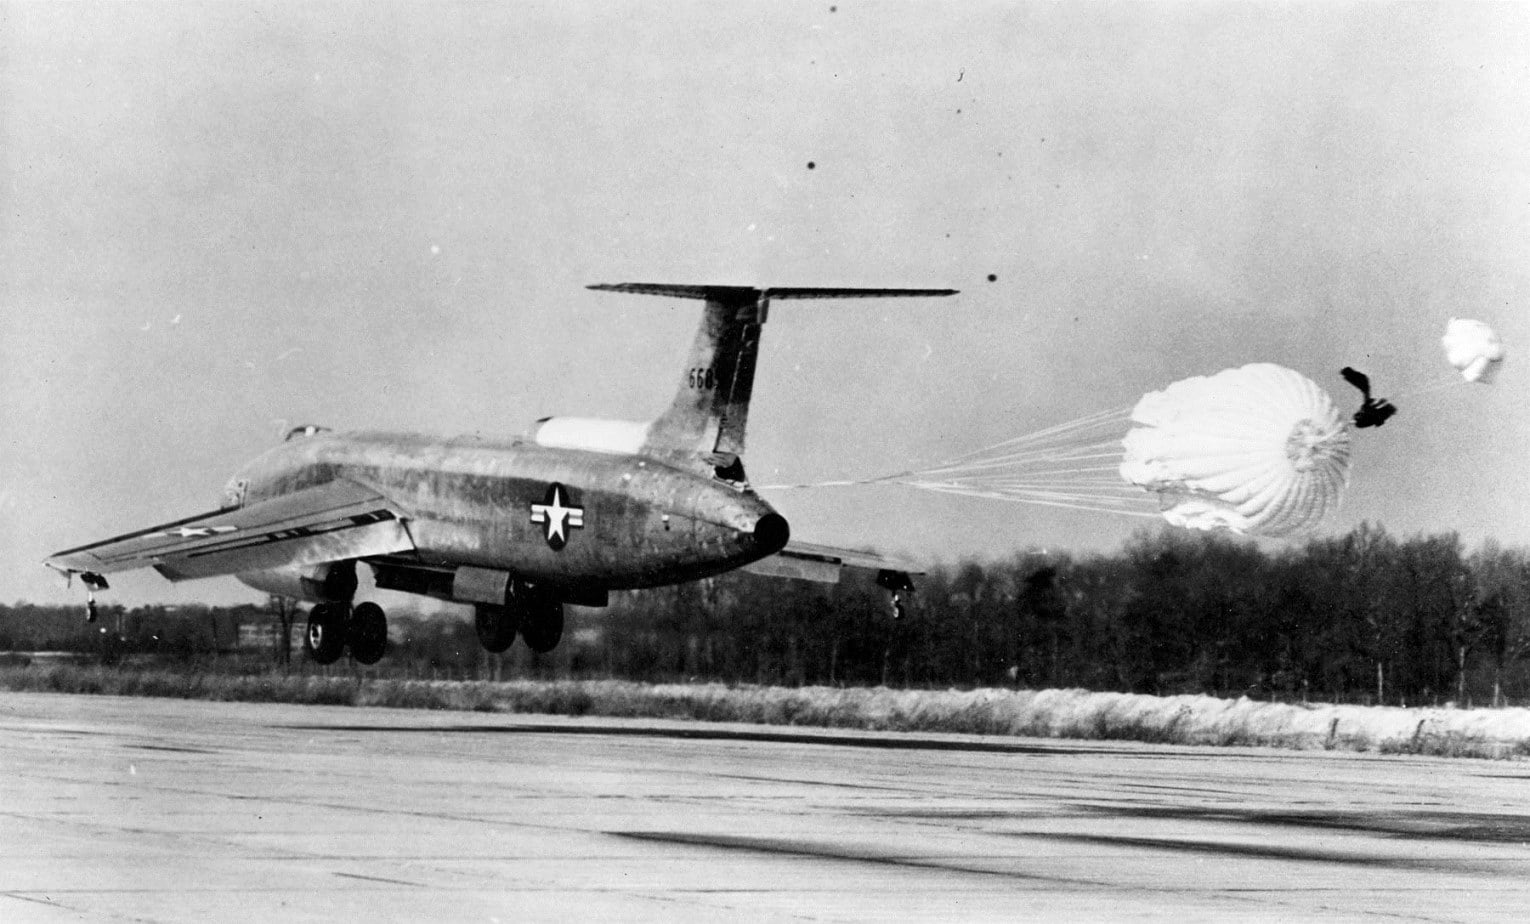 the xb 51 martin s movie star bomber smashed the bomber mold